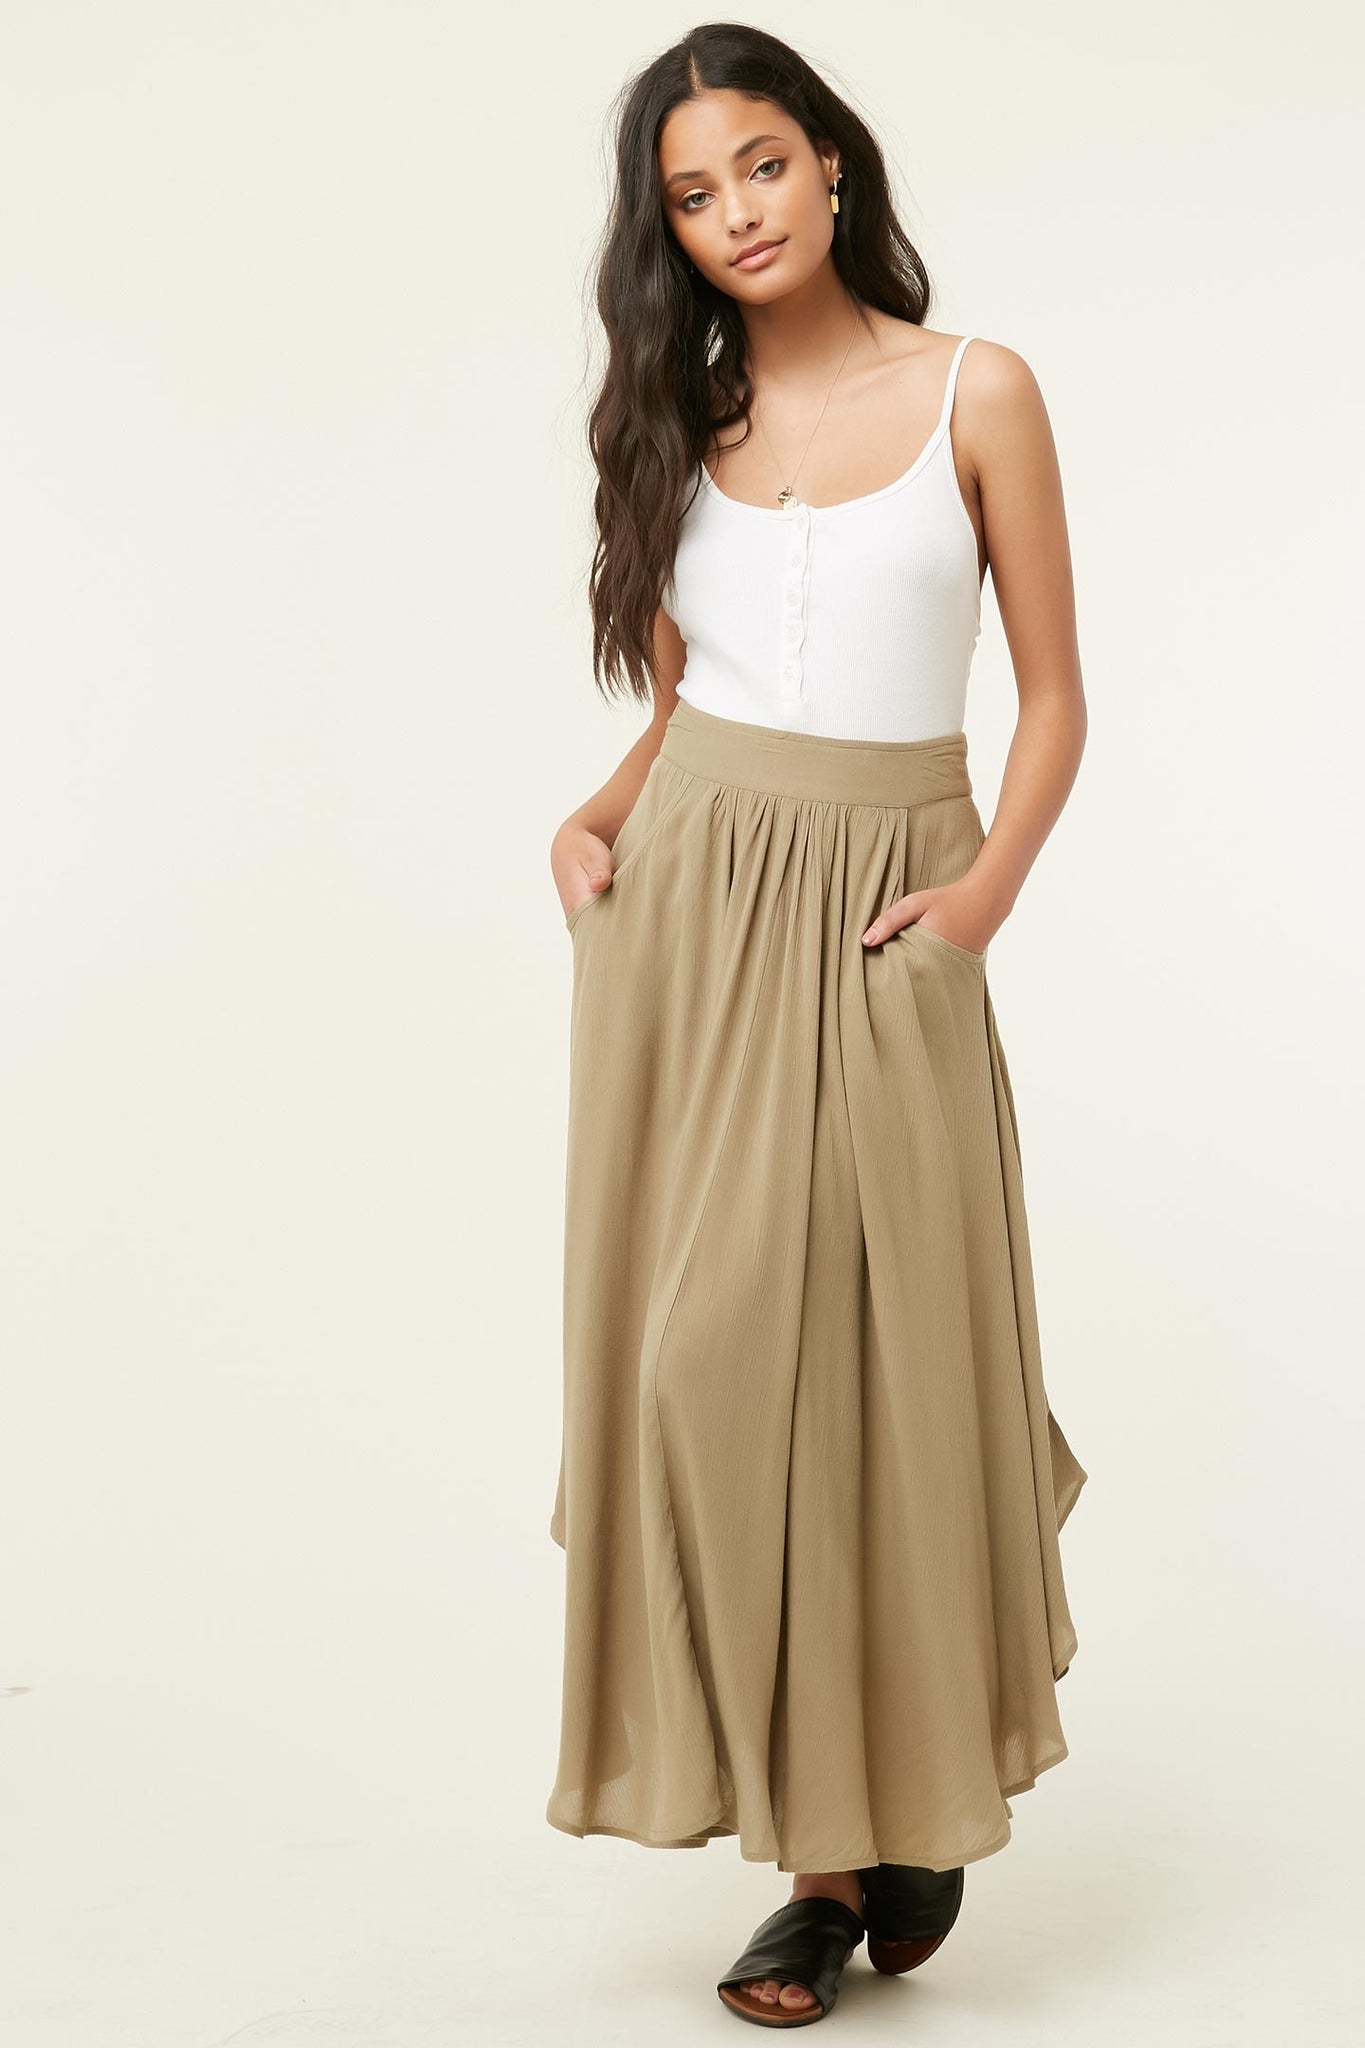 Merin Skirt - Mermaid | O'Neill